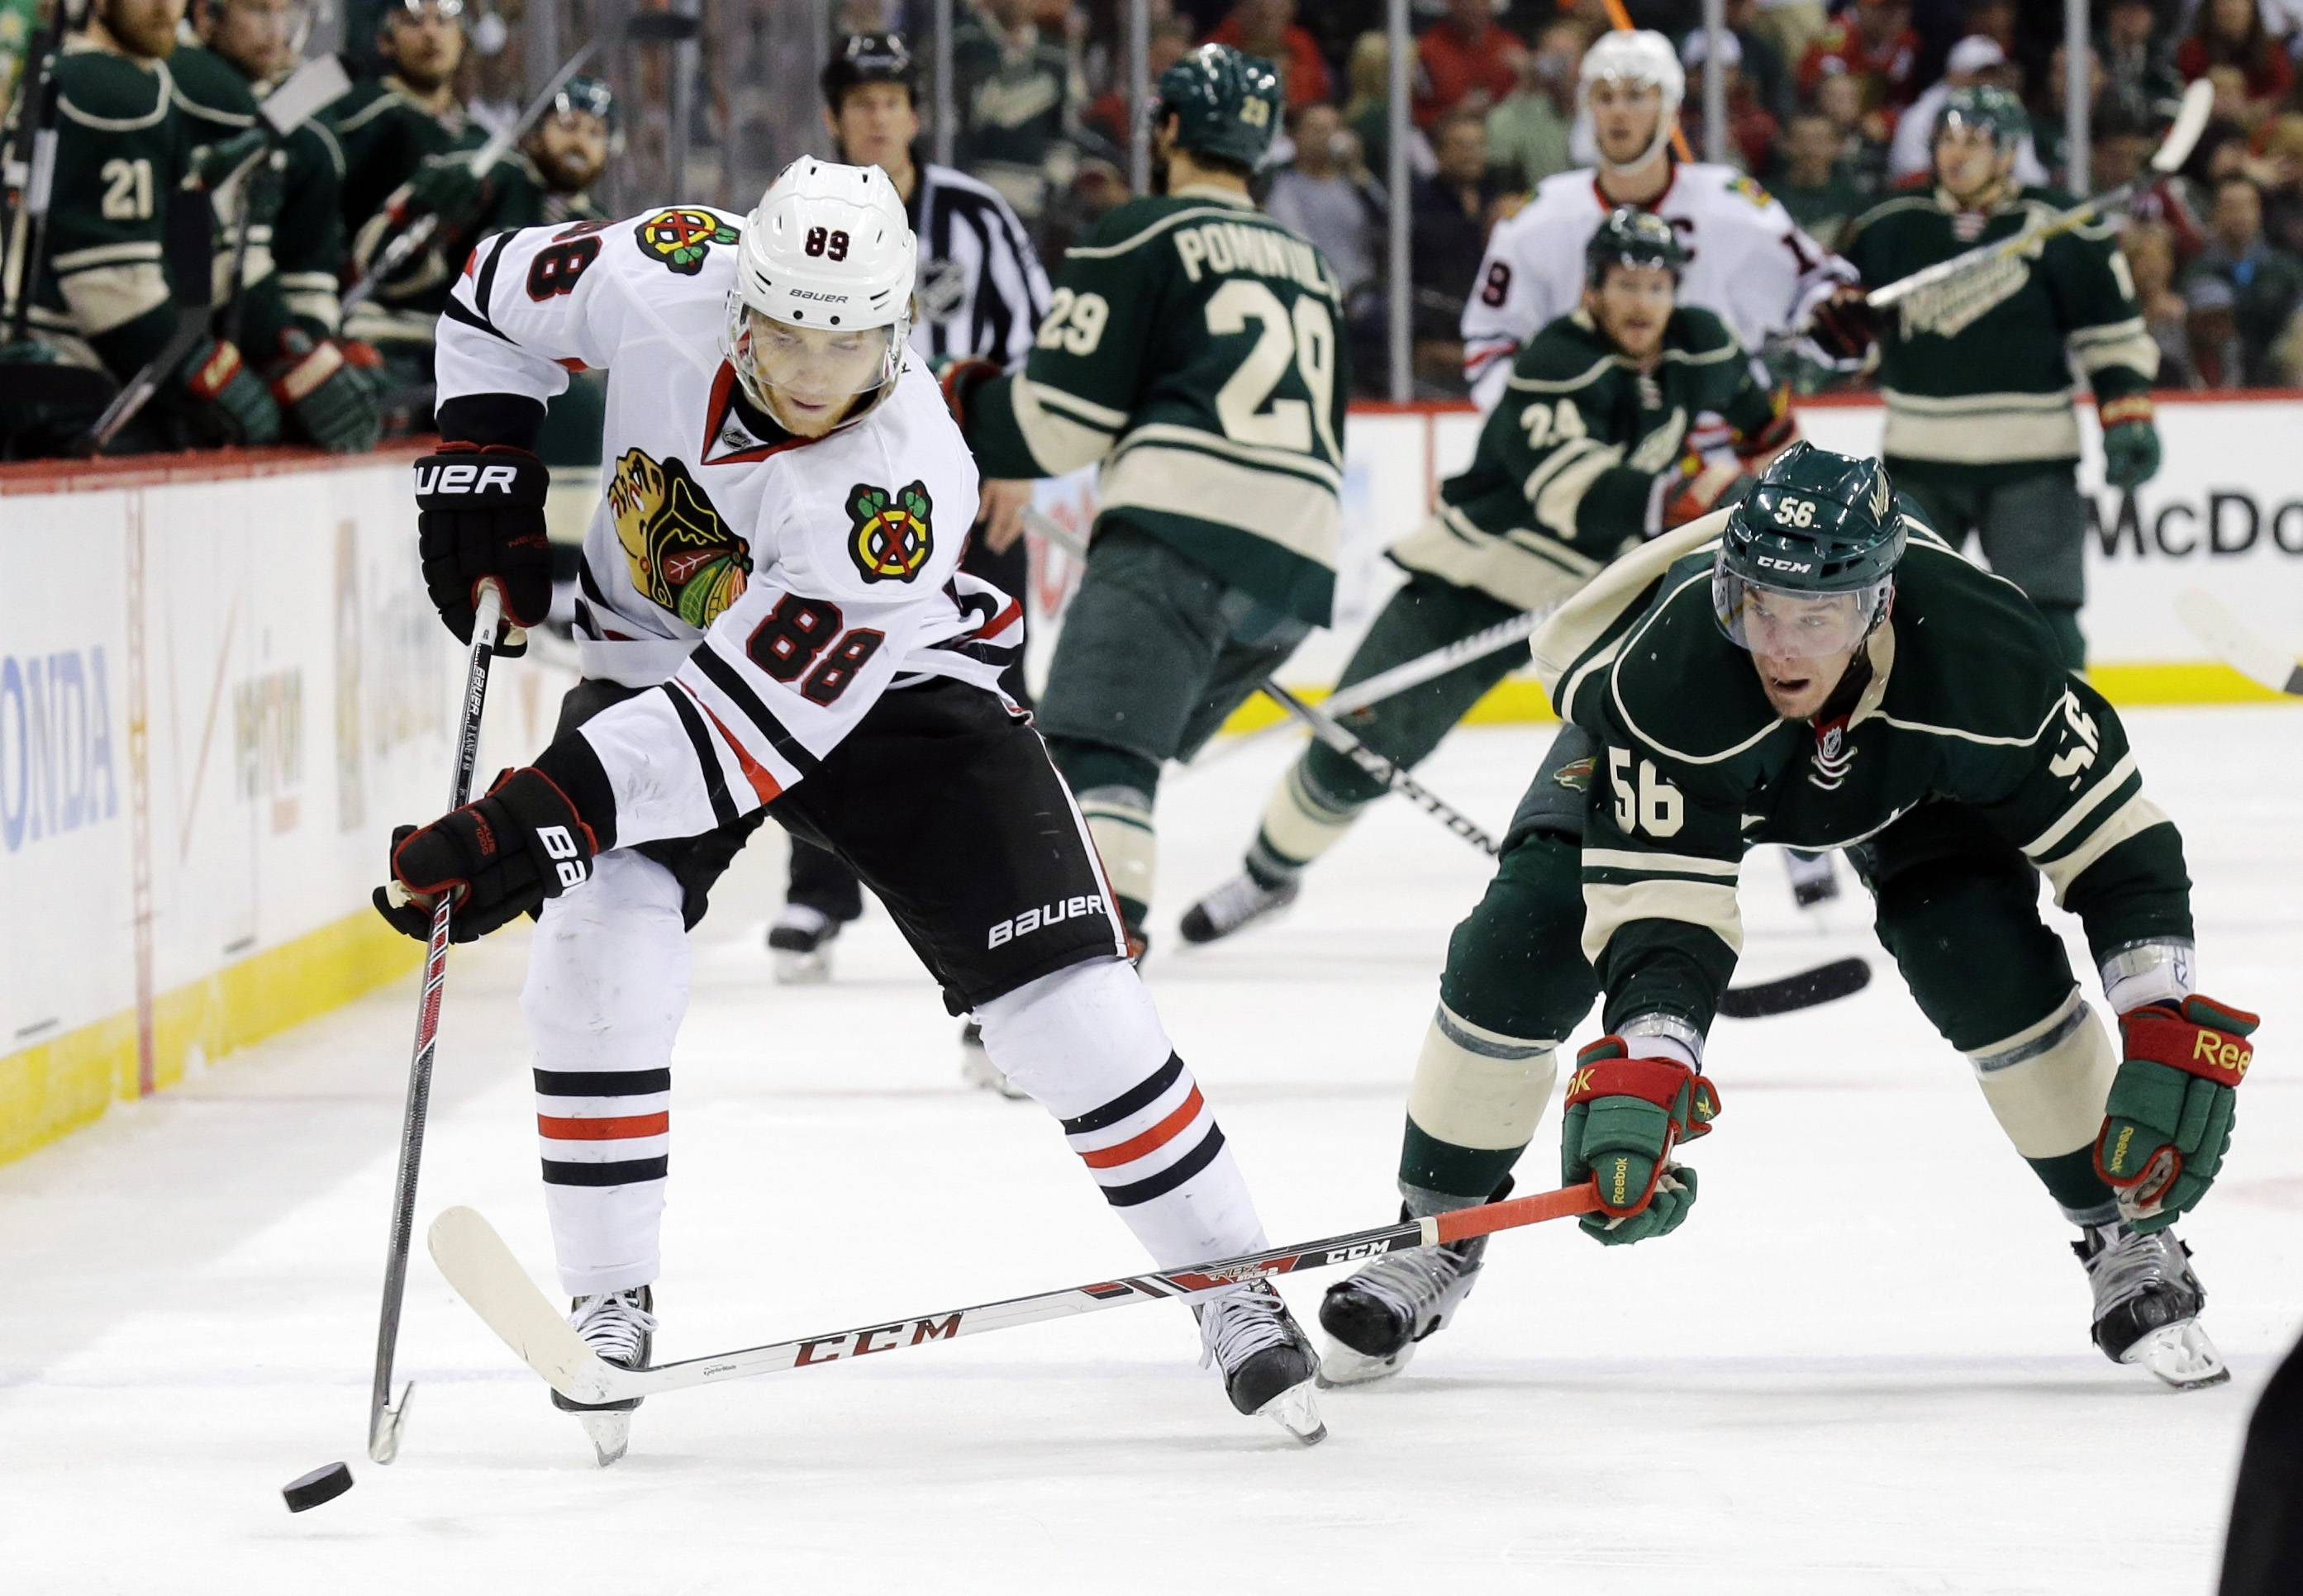 Chicago Blackhawks right wing Patrick Kane (88) and Minnesota Wild left wing Erik Haula (56), of Finland, chase the puck during the second period.